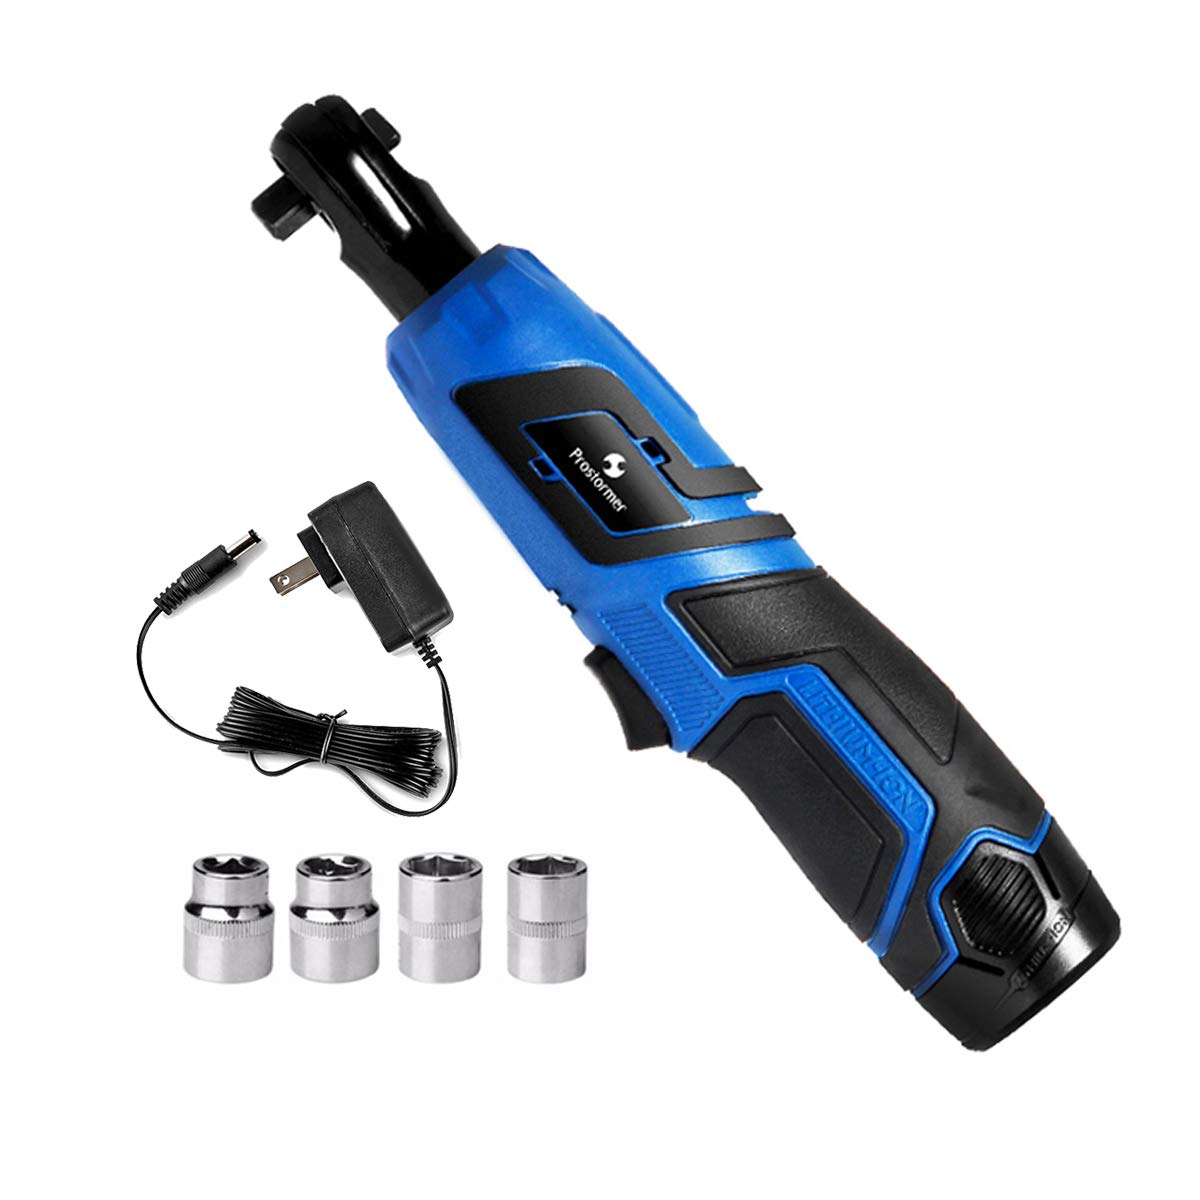 3/8'' Cordless Ratchet Wrench, Prostormer 12V Electric Ratchet Wrench Kit with 4 Sockets, 2000mAh Lithium-Ion Battery, 1 Hour Fast Charger